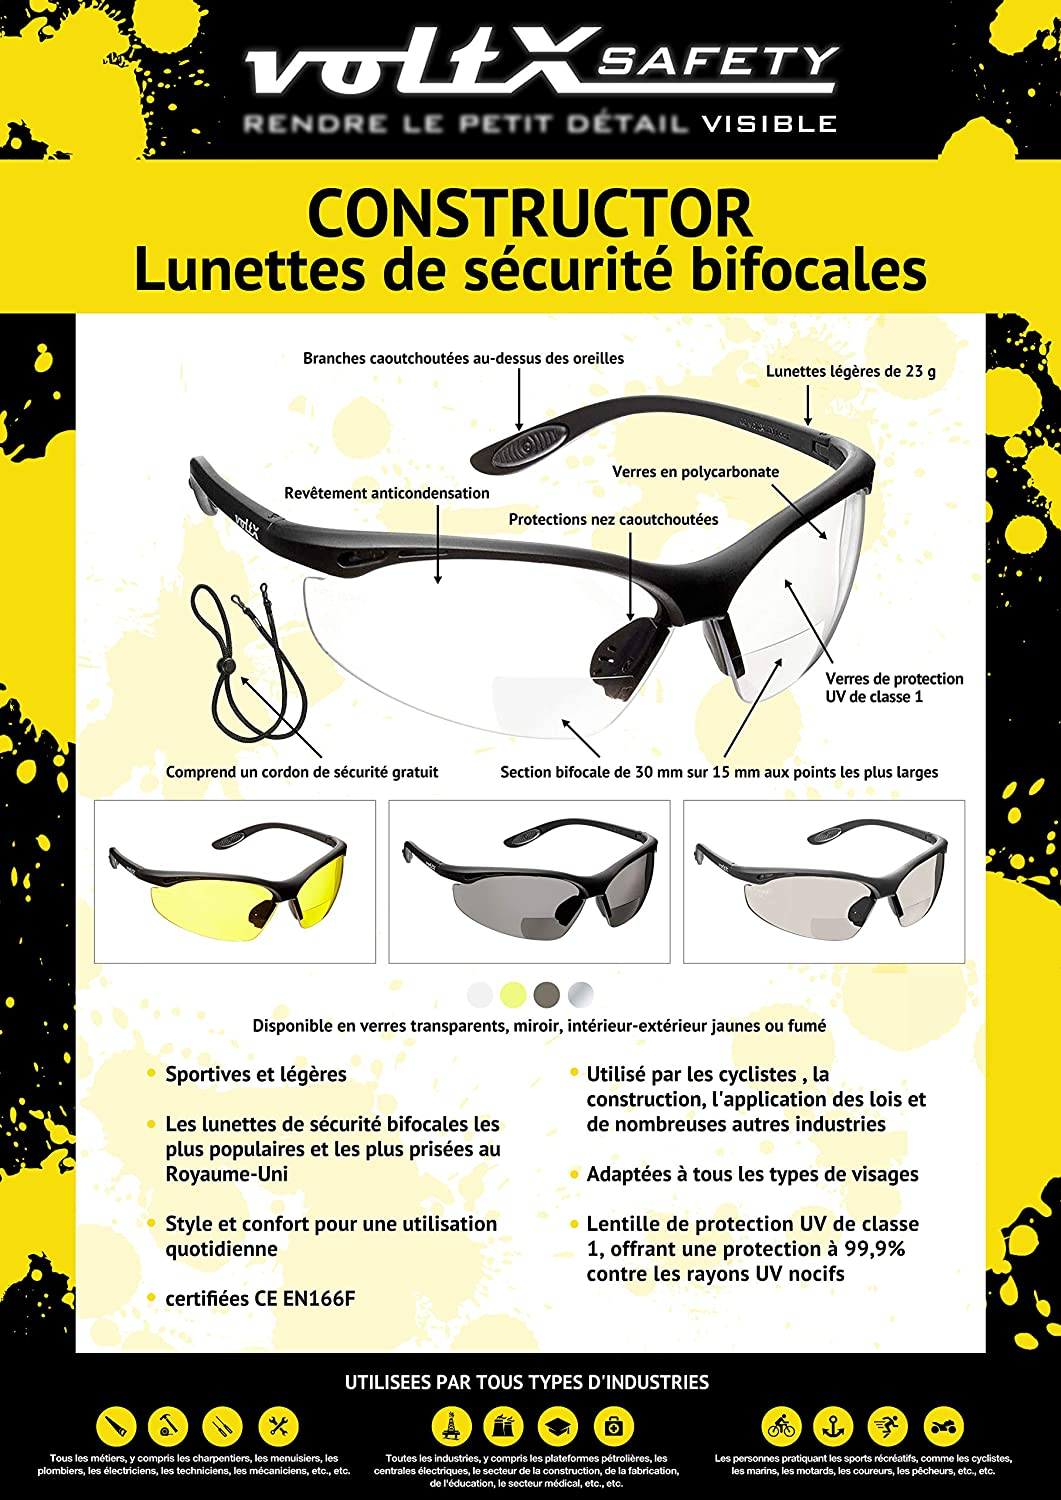 Anti Fog Coated UV400 lens Clear Frame, Clear Lens +2.5 Dioptre voltX CONSTRUCTOR ULTIMATE Bifocal Reading Safety Glasses CE EN166FT certified PREMIUM Cycling Sports Bifocals